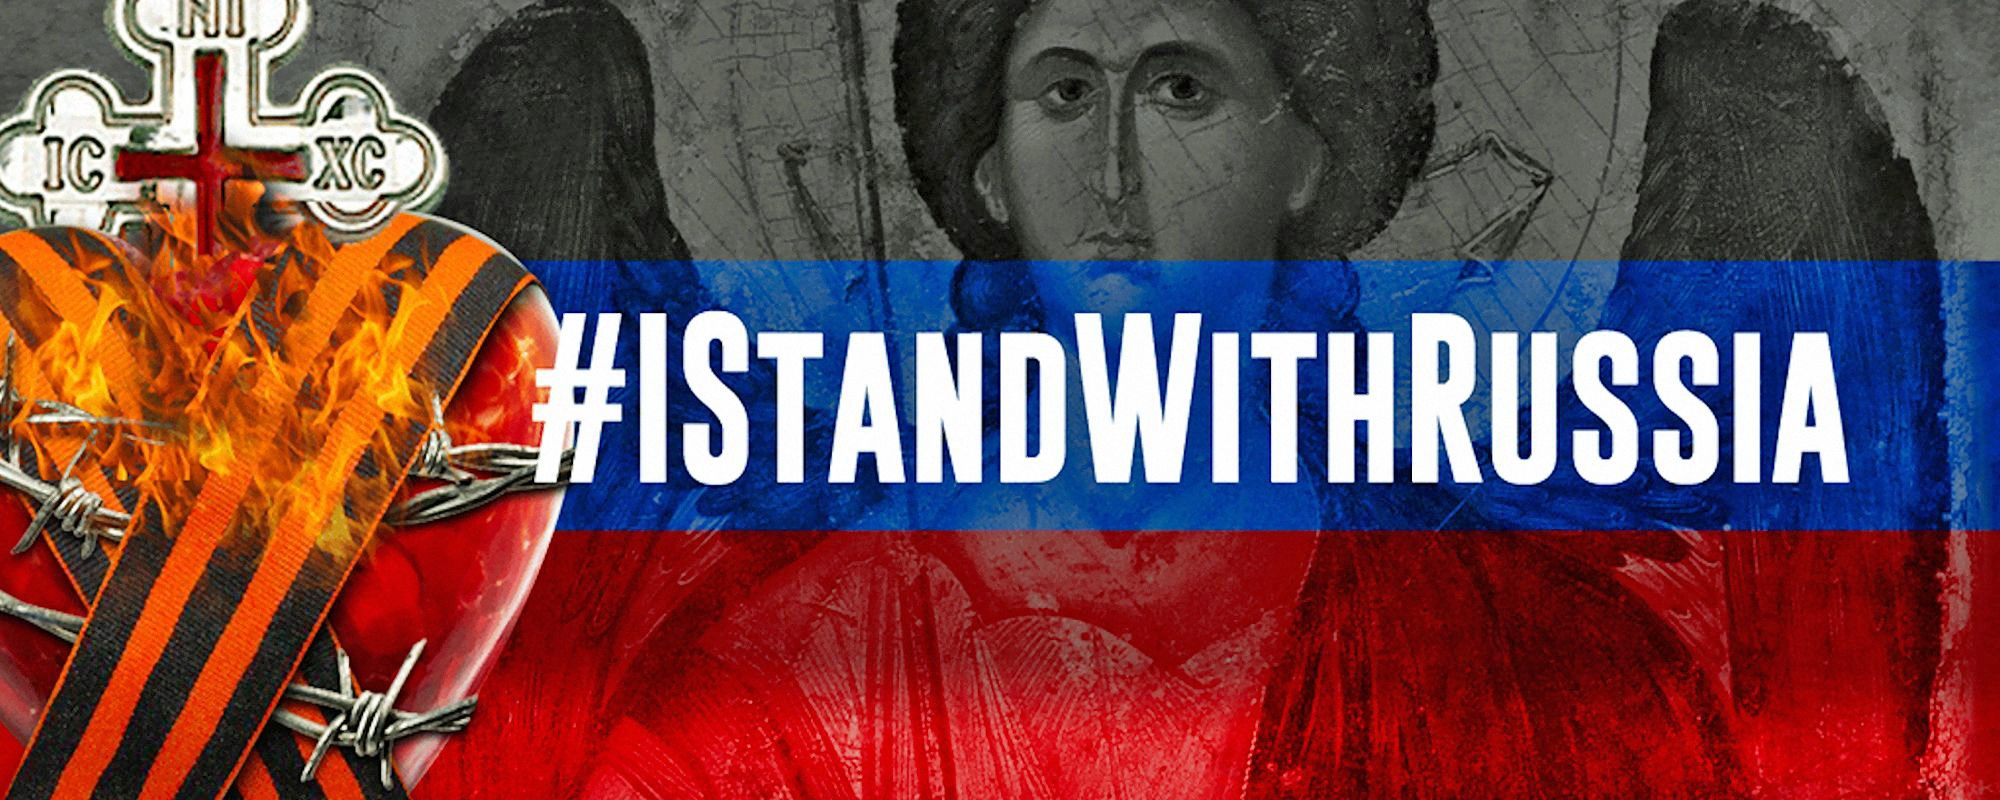 00 I stand with Russia 01 251115